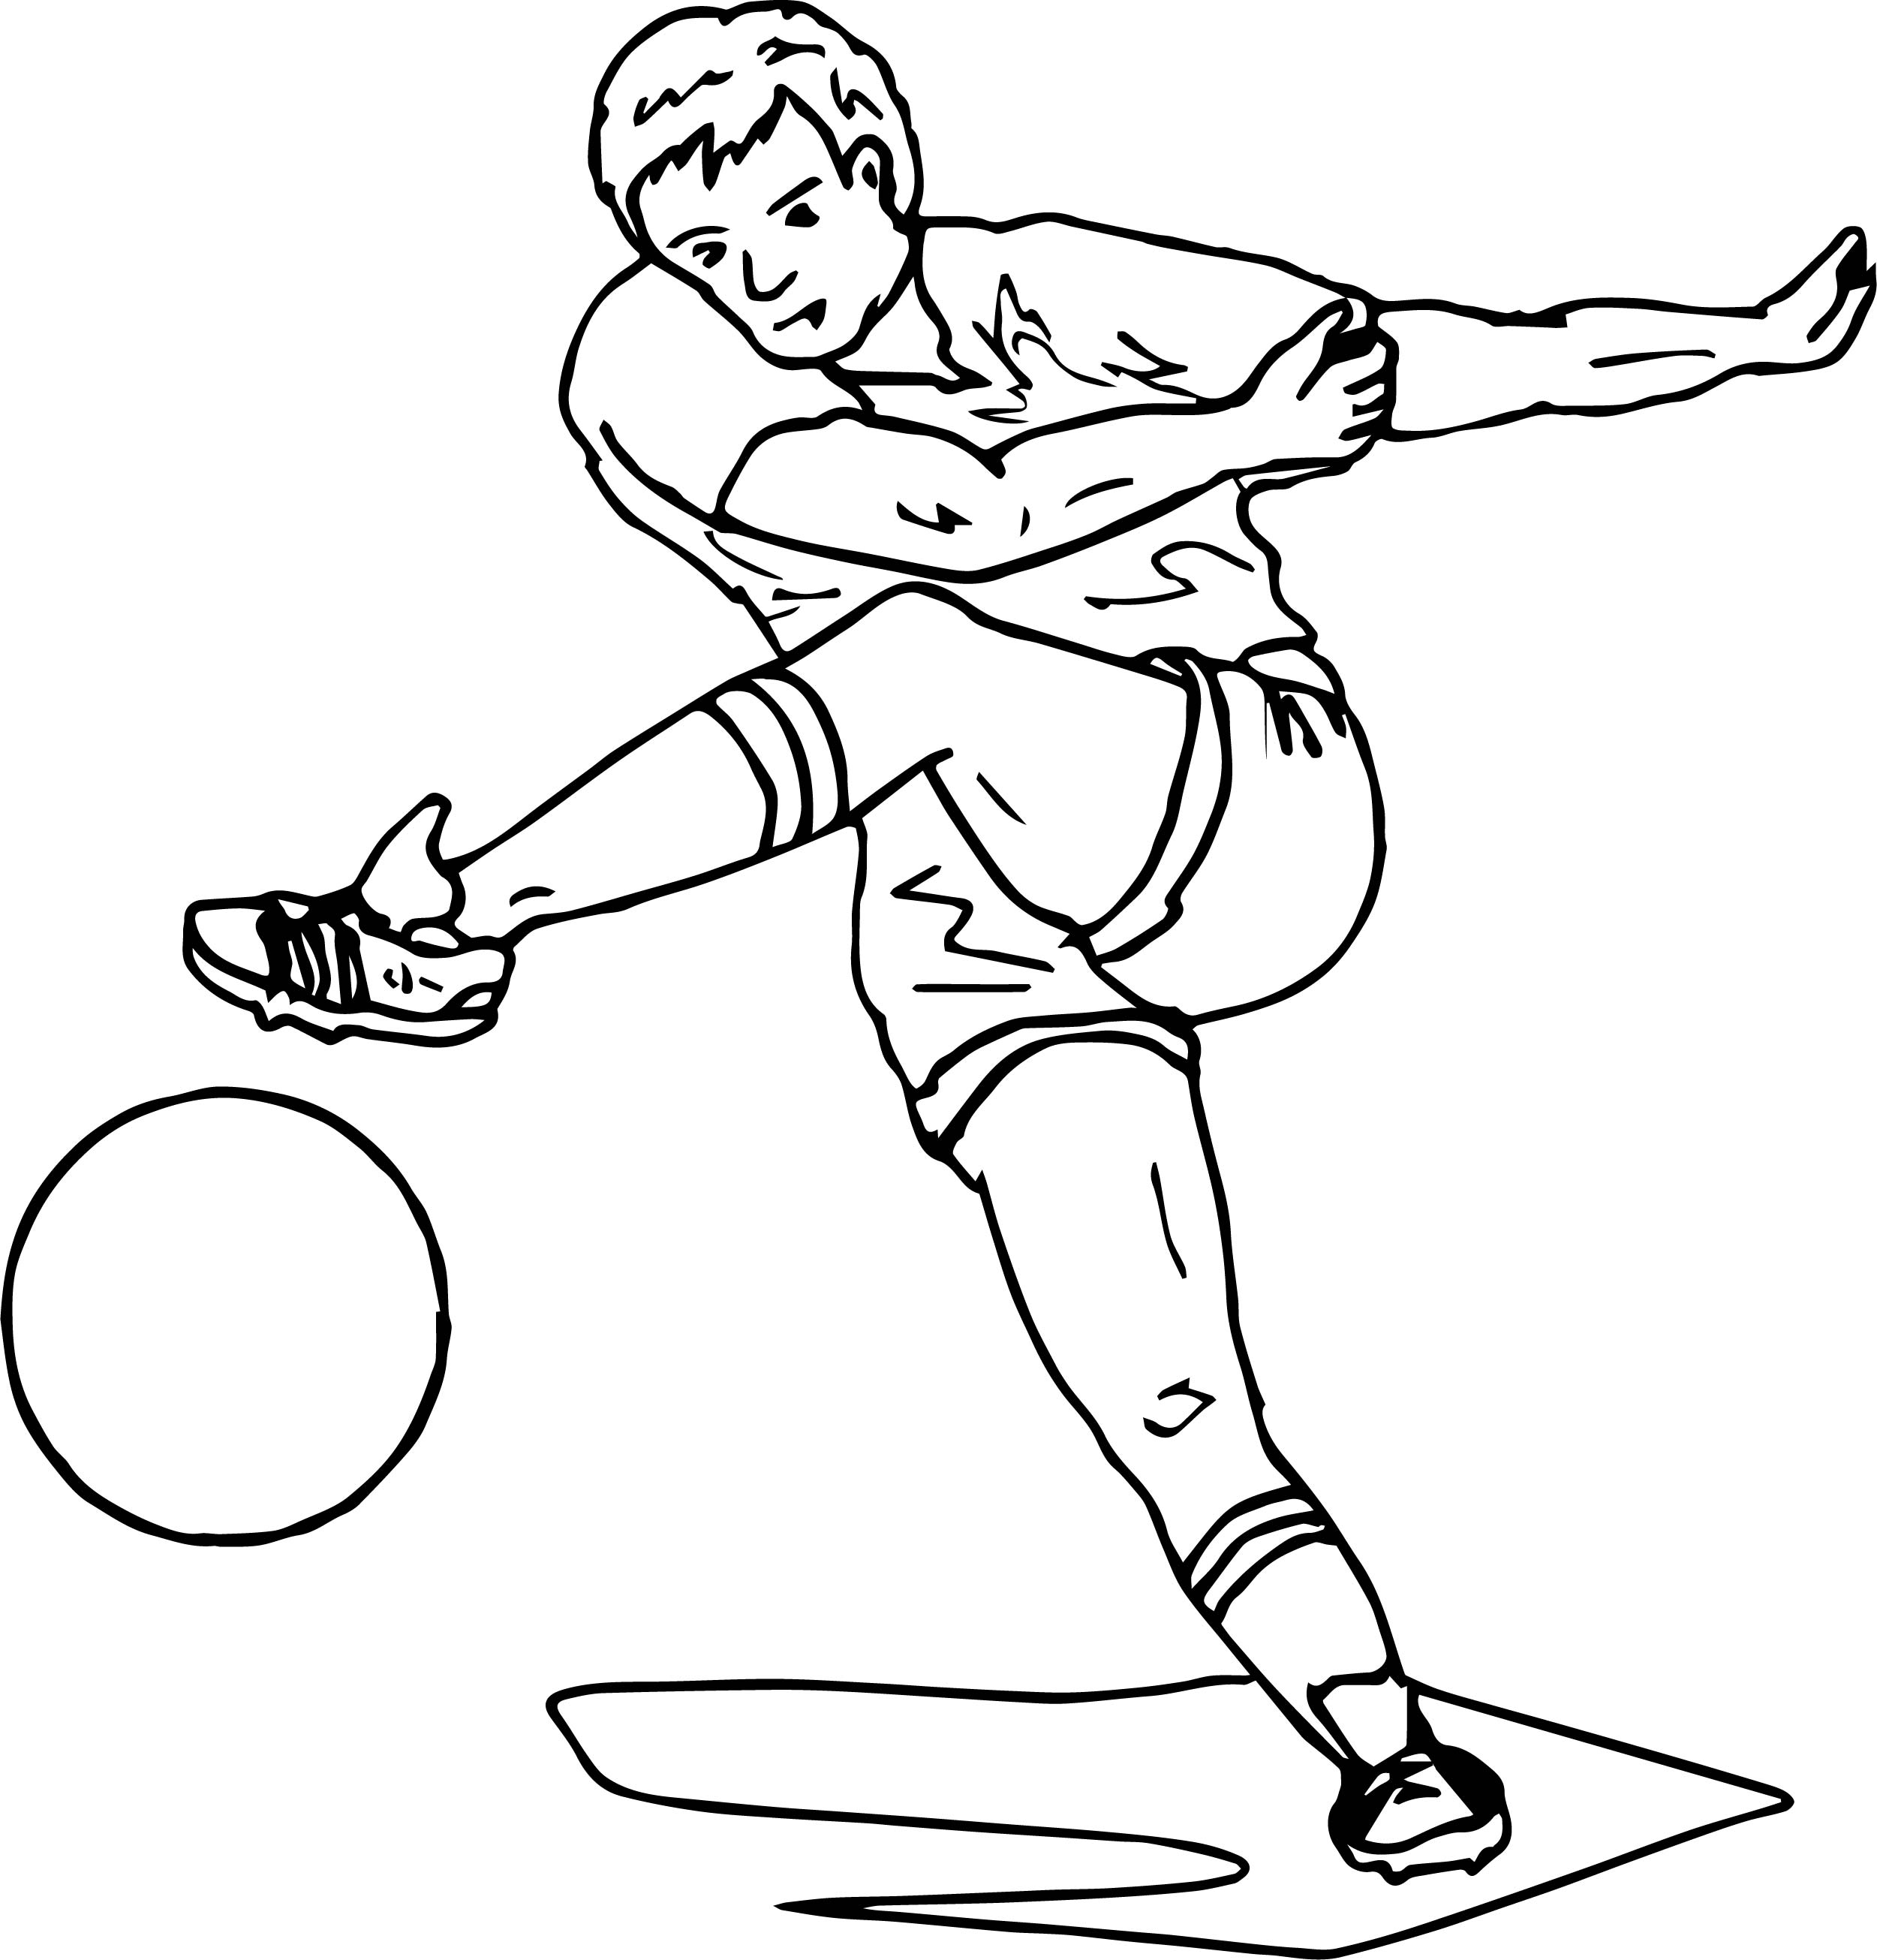 football coloring free printable football coloring pages for kids best football coloring